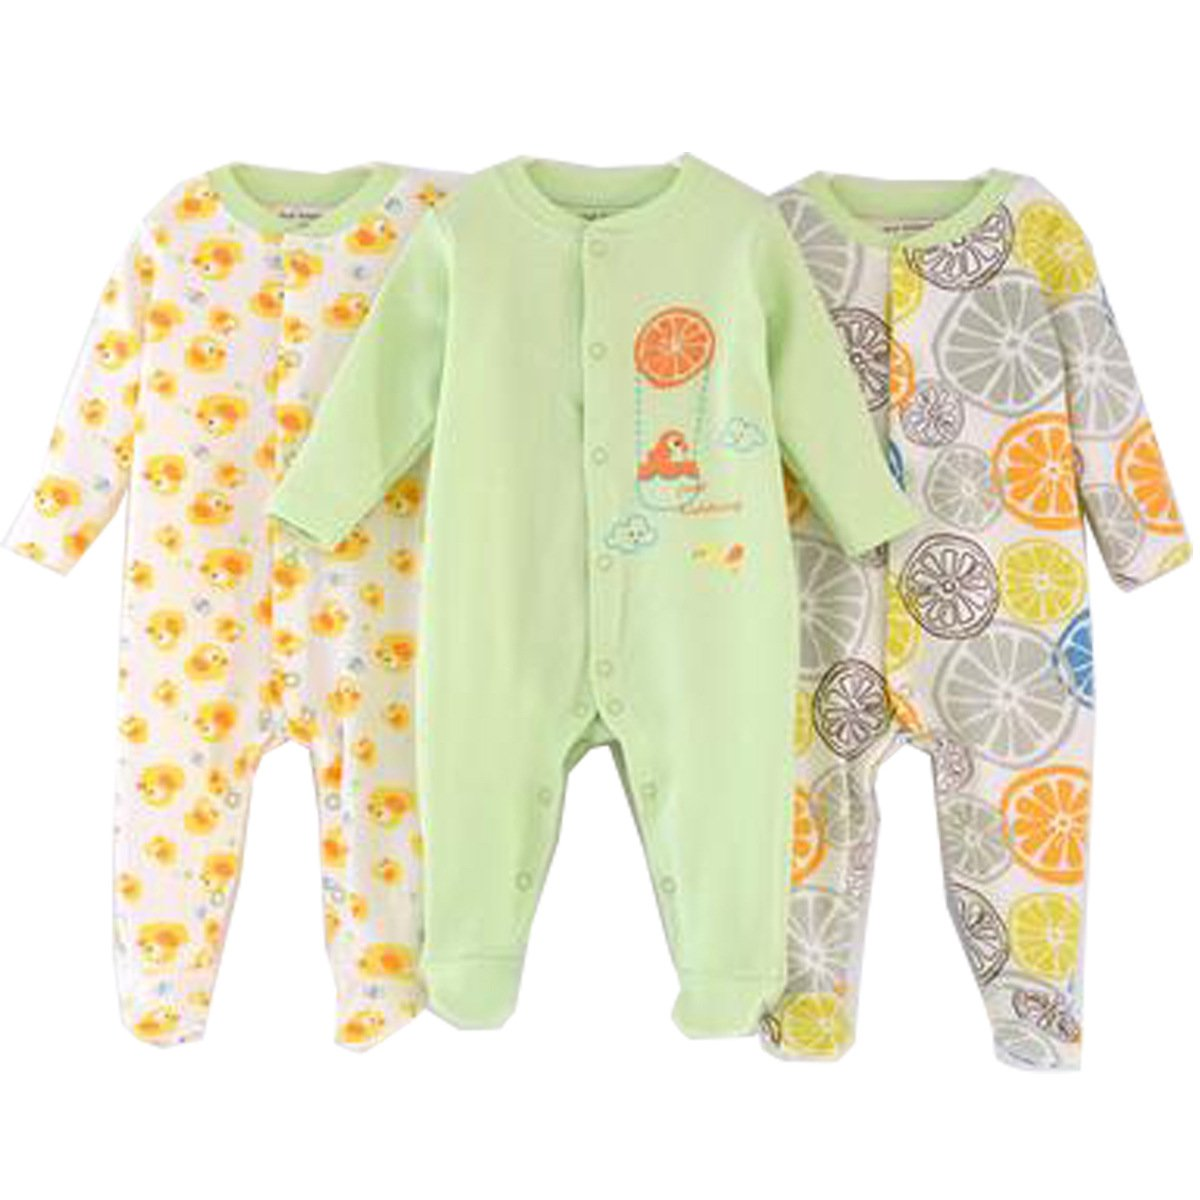 Unisex-Baby Footed Pajamas Sleeper 0-6 Months - 3 Packs Infant Cotton Long Sleeve Jumpsuit Newborn Romper Bodysuit